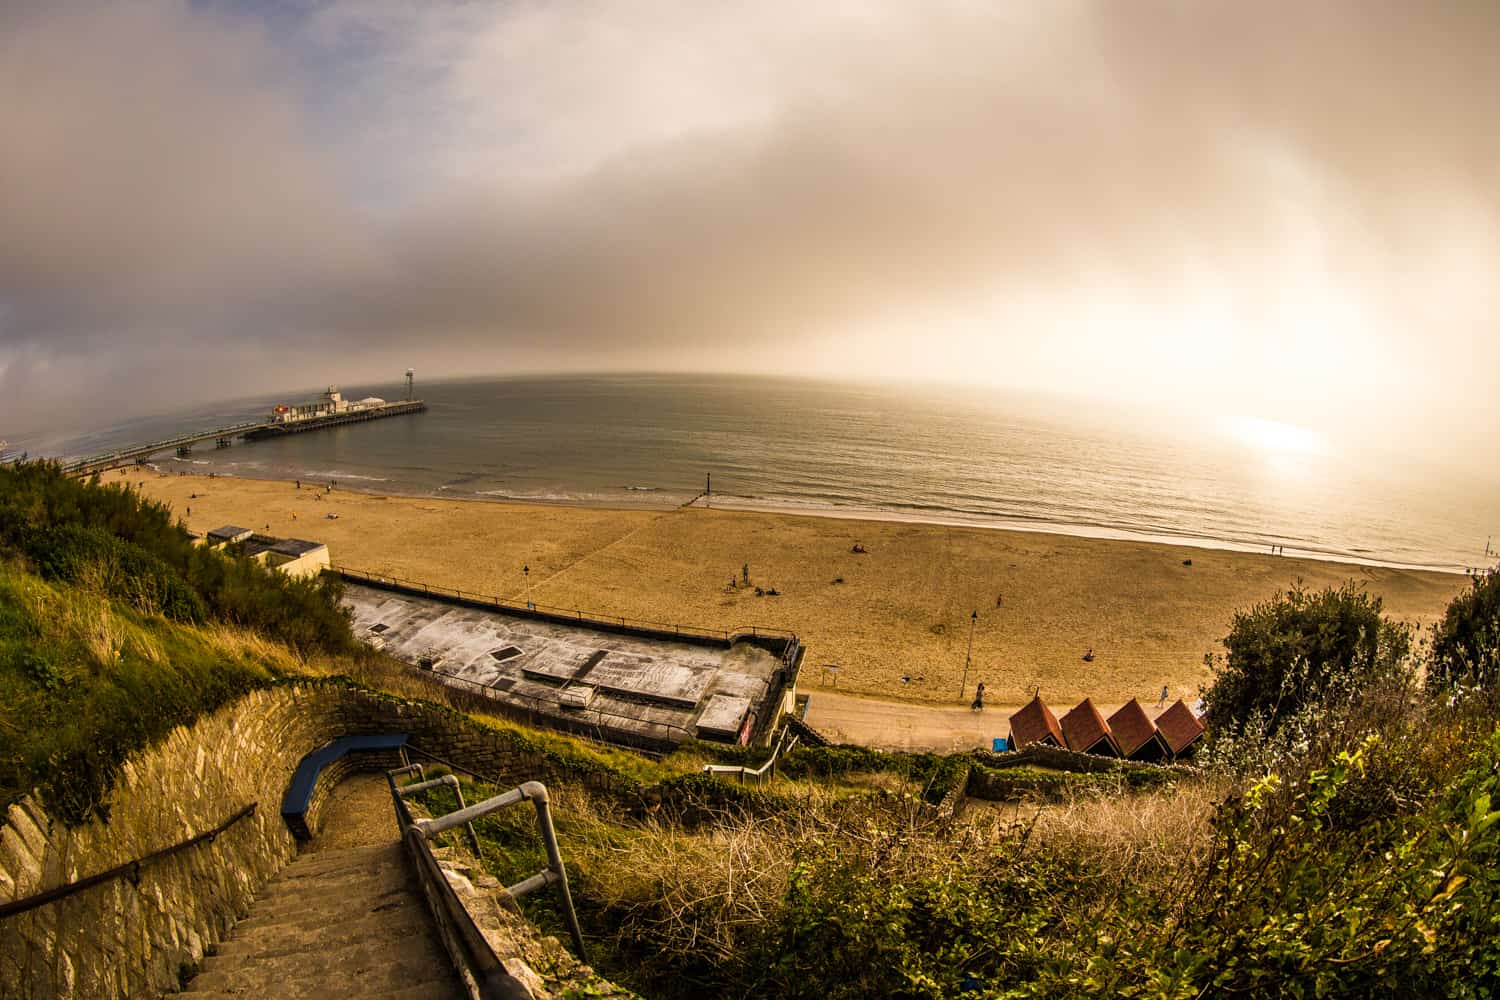 The pier and beach photographed from above by Bournemouth Photographer Rick McEvoy